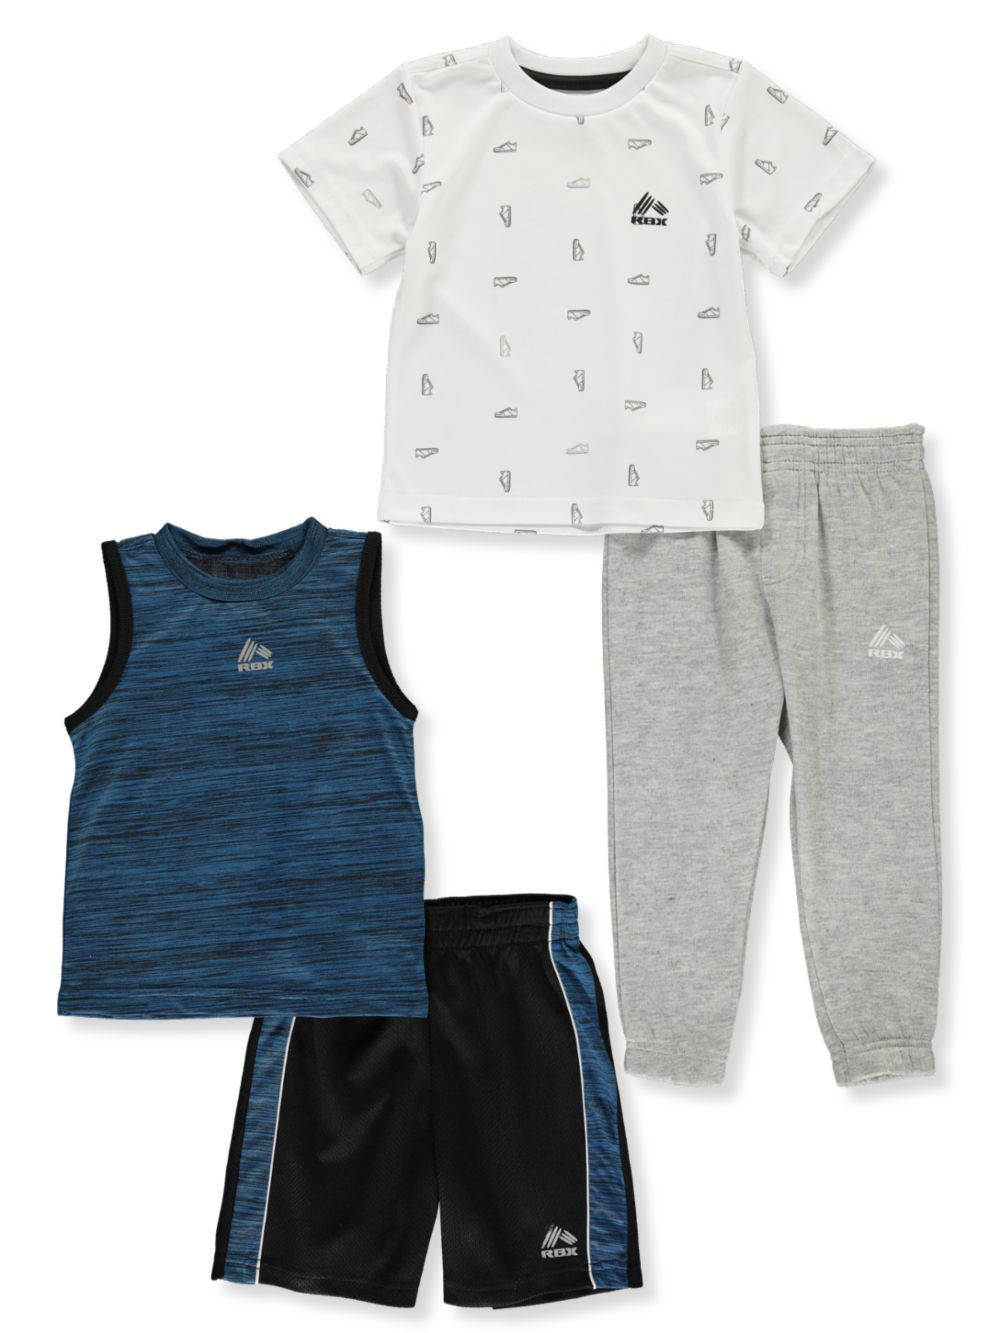 Sets 4-pack Shorts and Pants Outfits